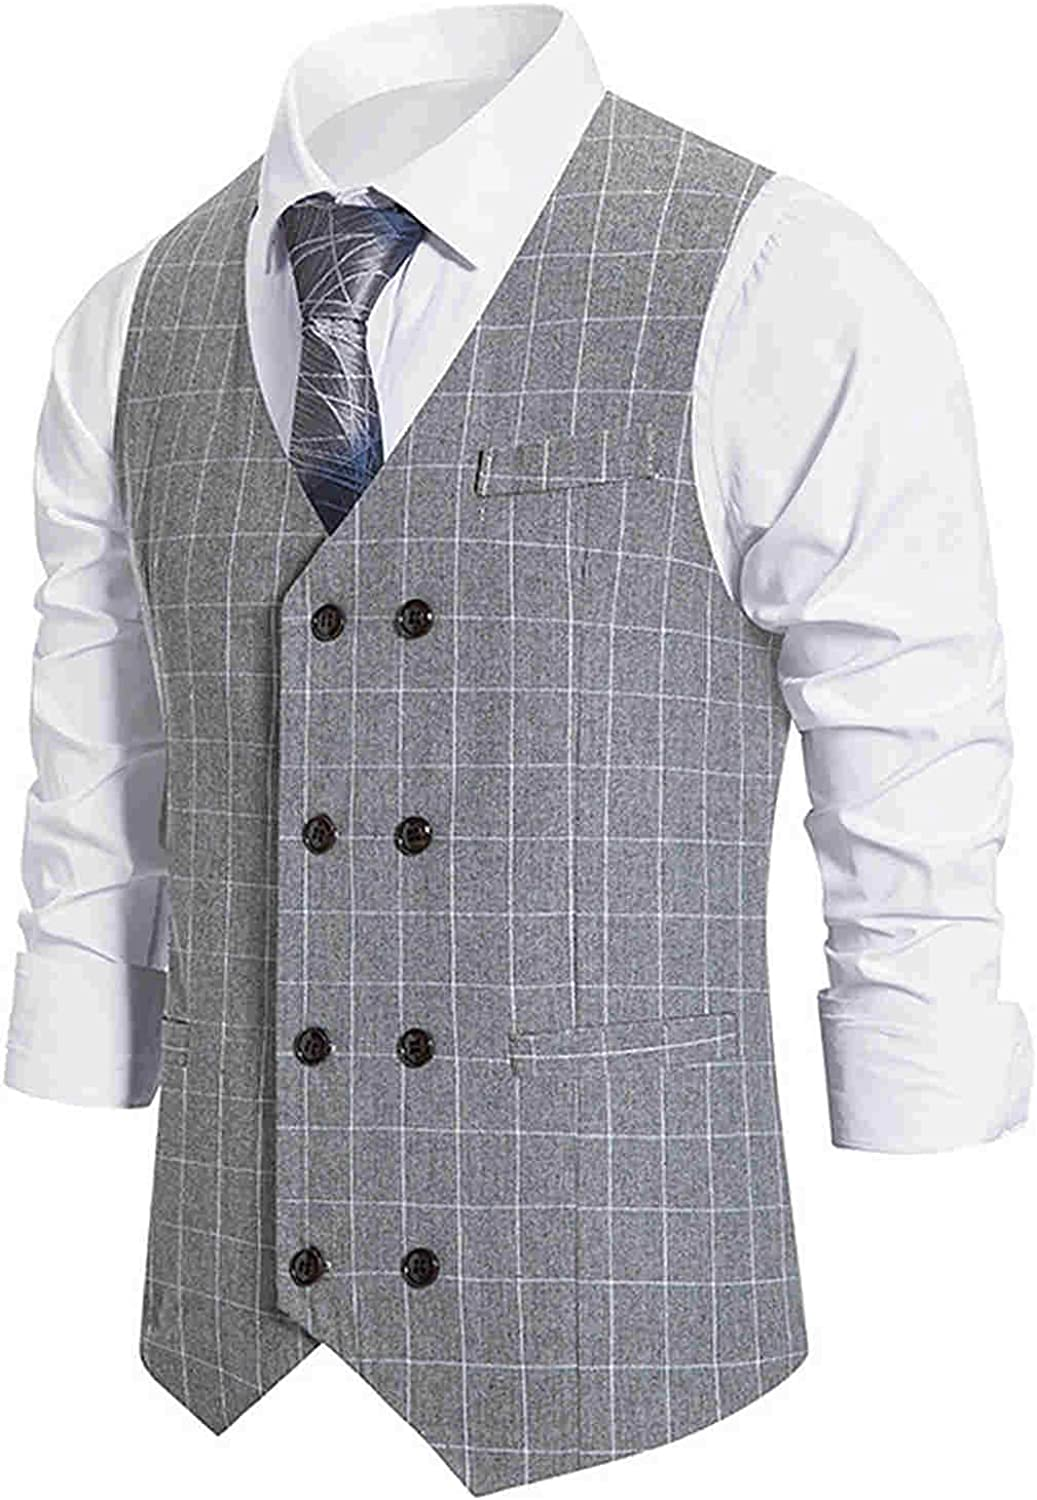 Mens Suit Vest Casual Slim Fit Retro Plaid Single Breasted Waistcoat for Party Wedding Prom Autumn and Winter